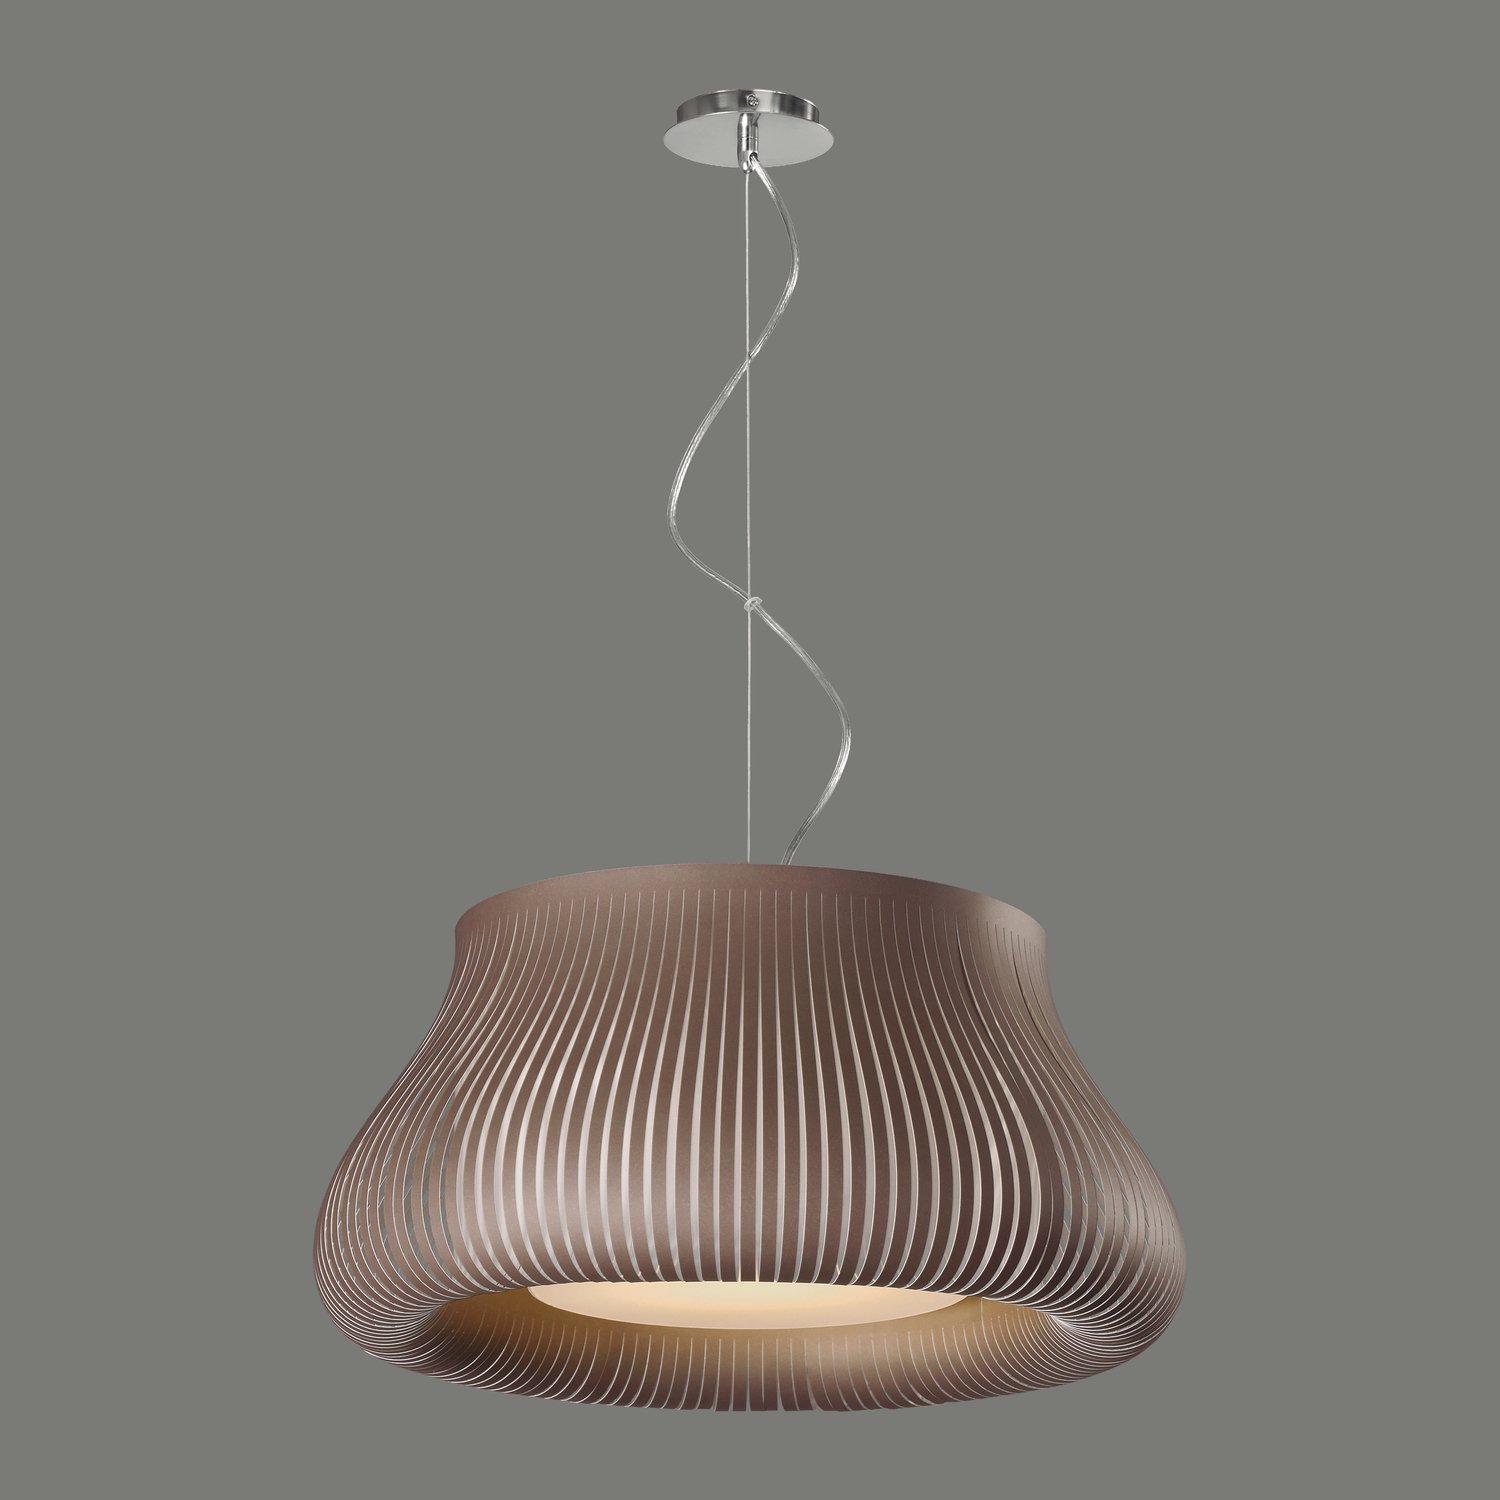 Suspension marron taupe pour clairage de salle manger - Suspension pour salon ...